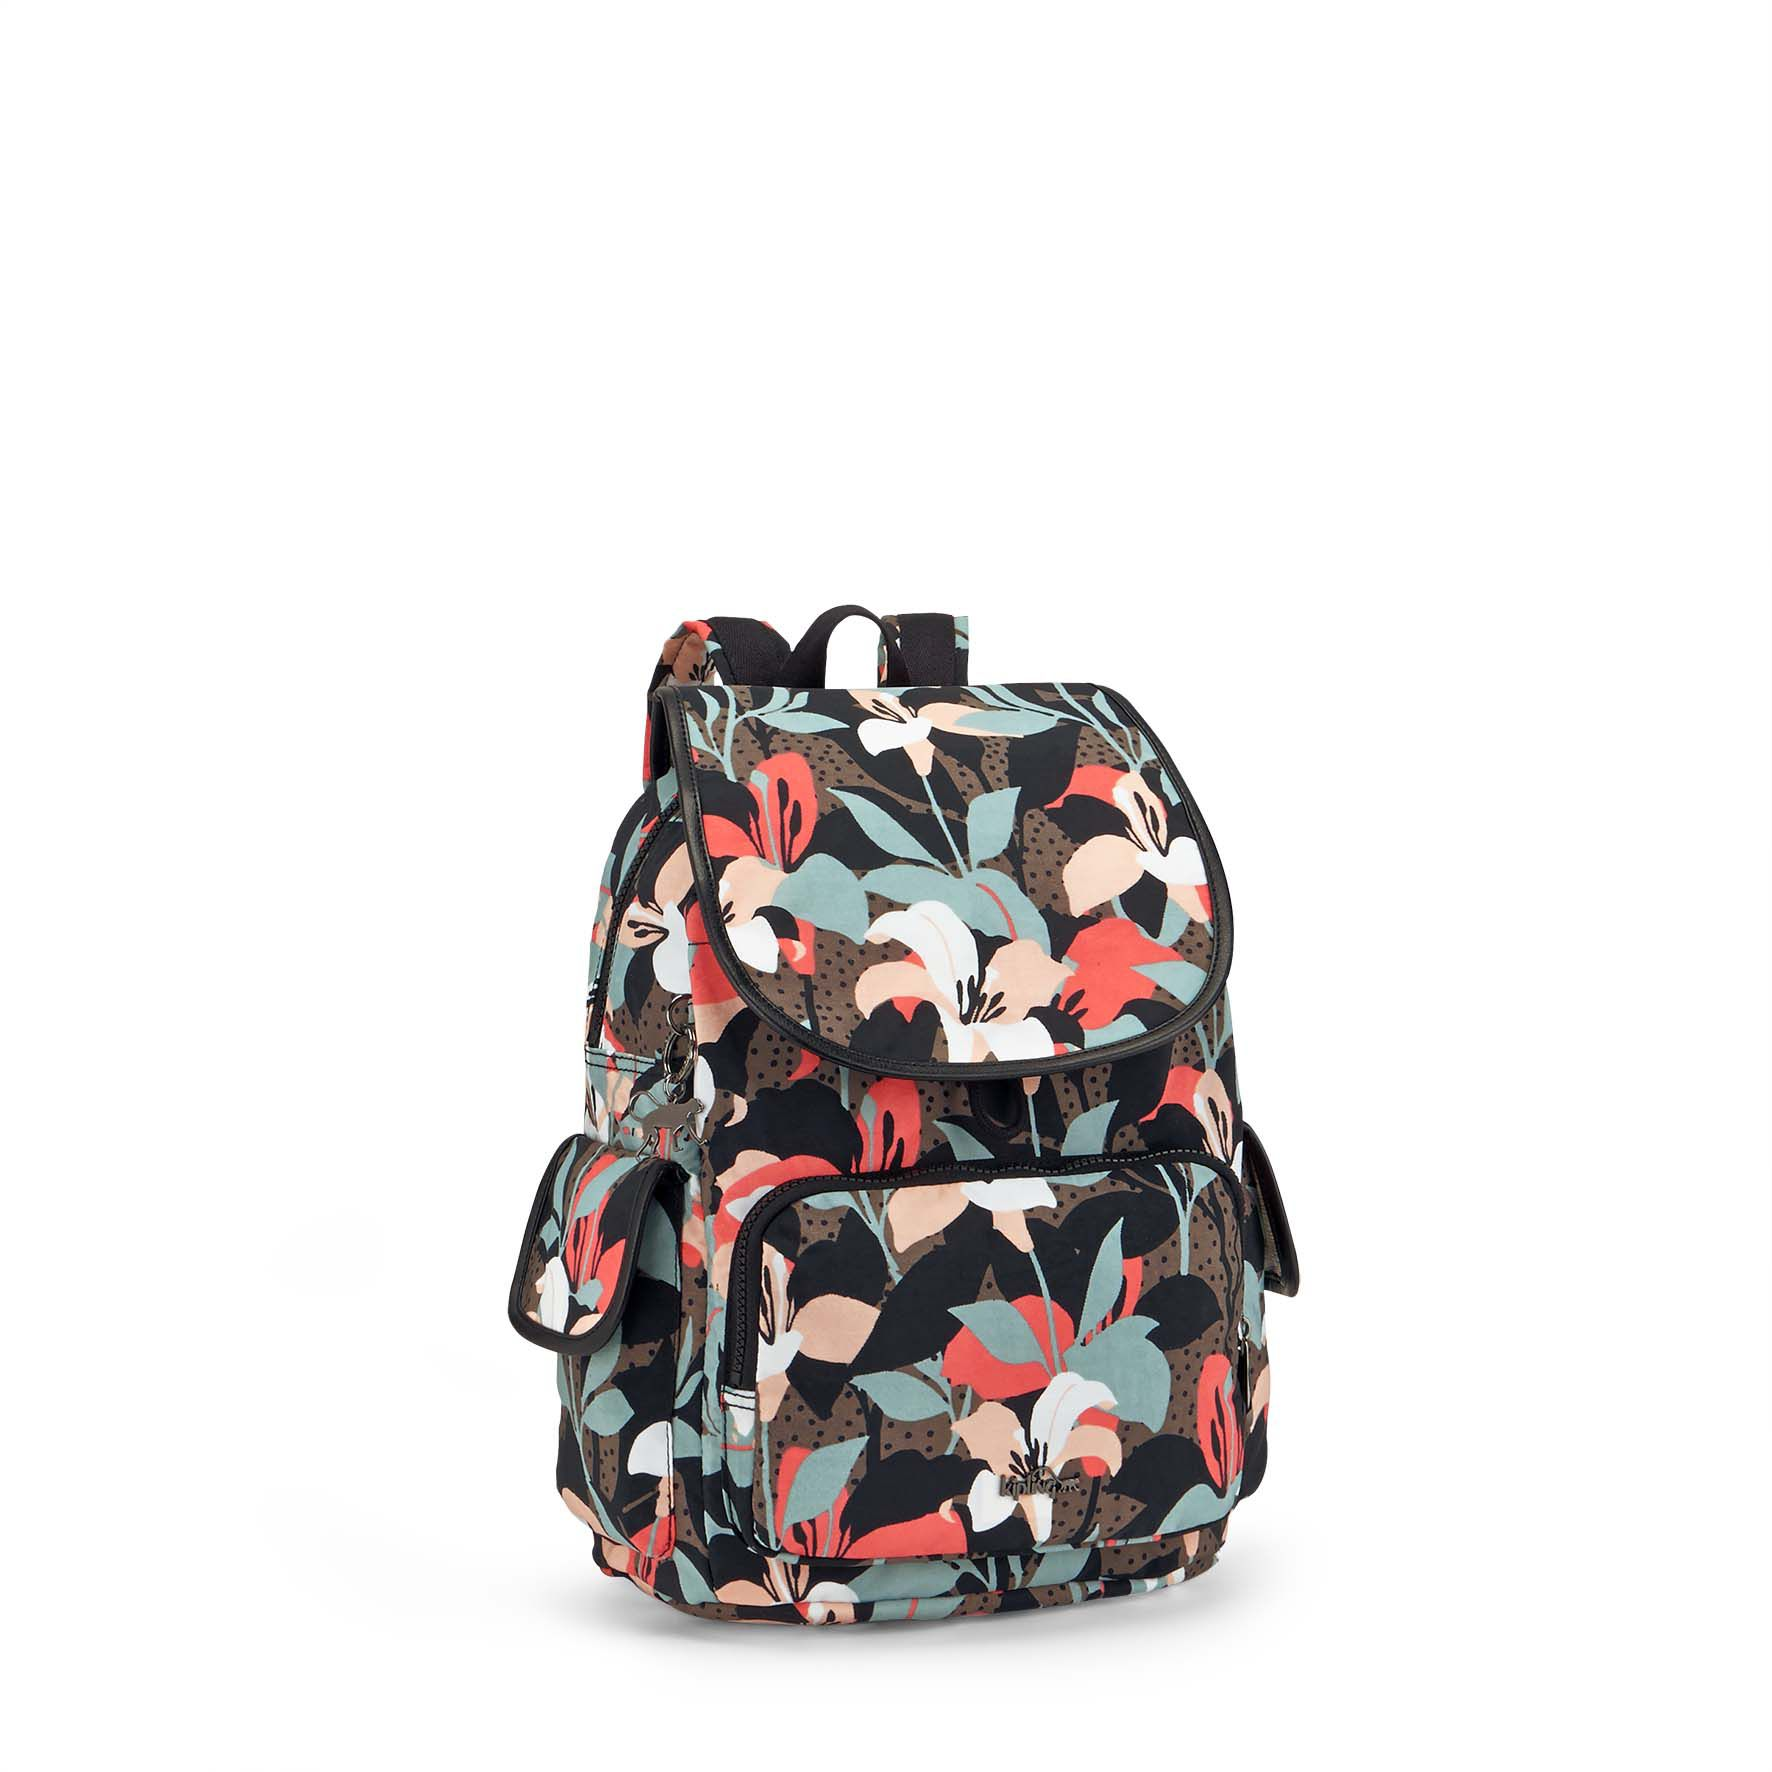 Kipling City pack backpack Graphic Floral Print